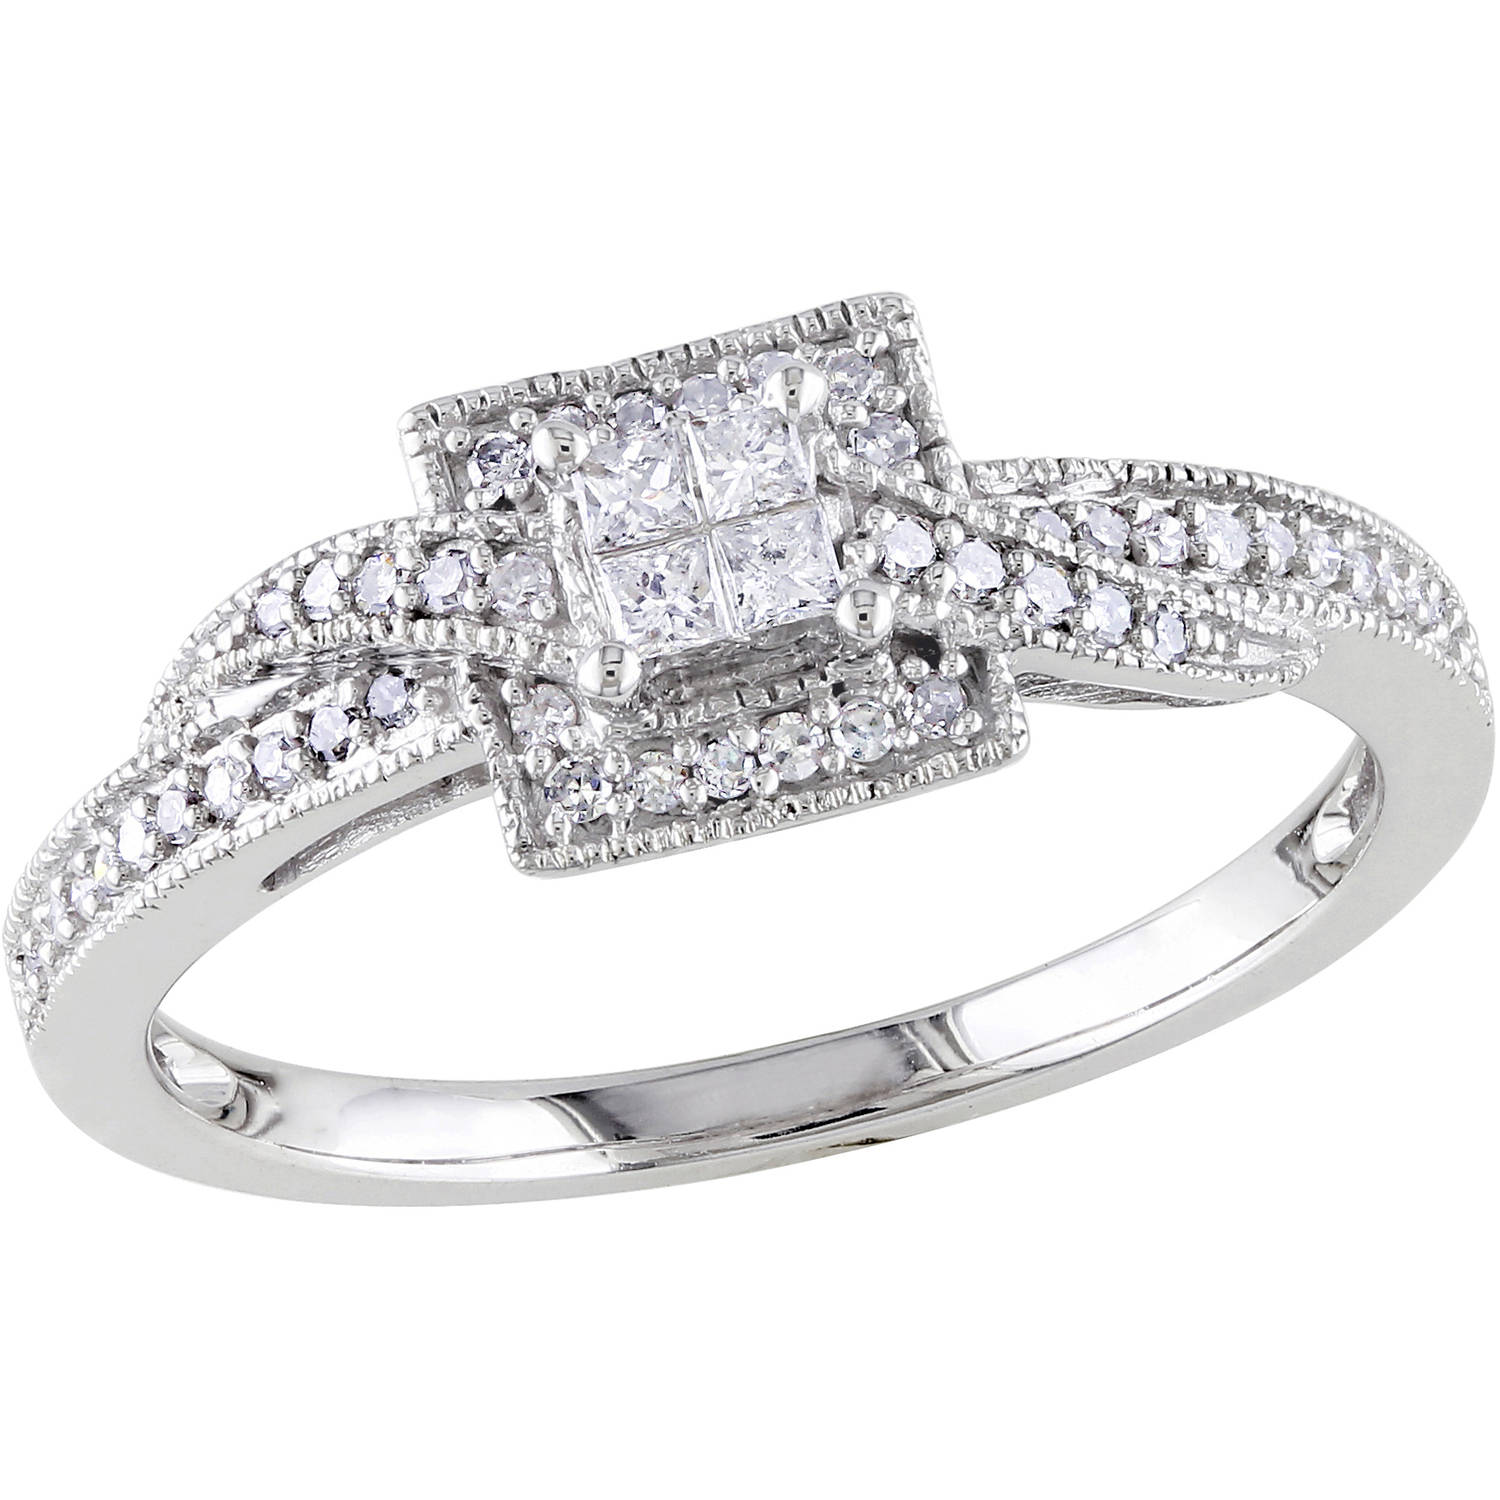 1/4 Carat T.W. Princess and Round-Cut Diamond 10kt White Gold Cross-Over Engagement Ring